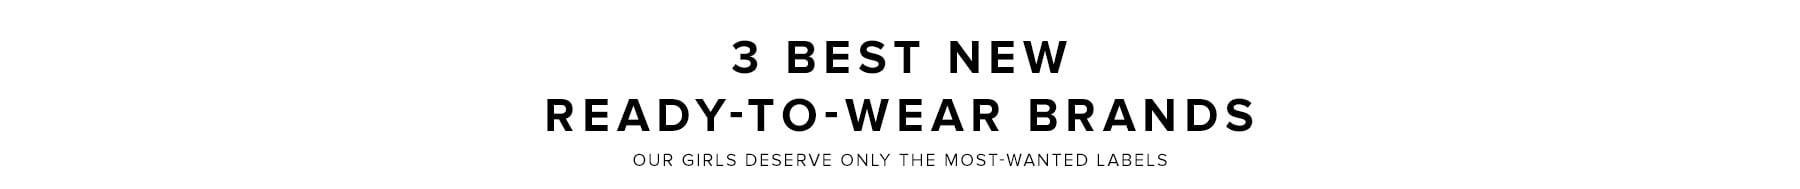 3 best new ready-to-wear brands. Our girls deserve only the most-wanted labels. Shop Petersyn.